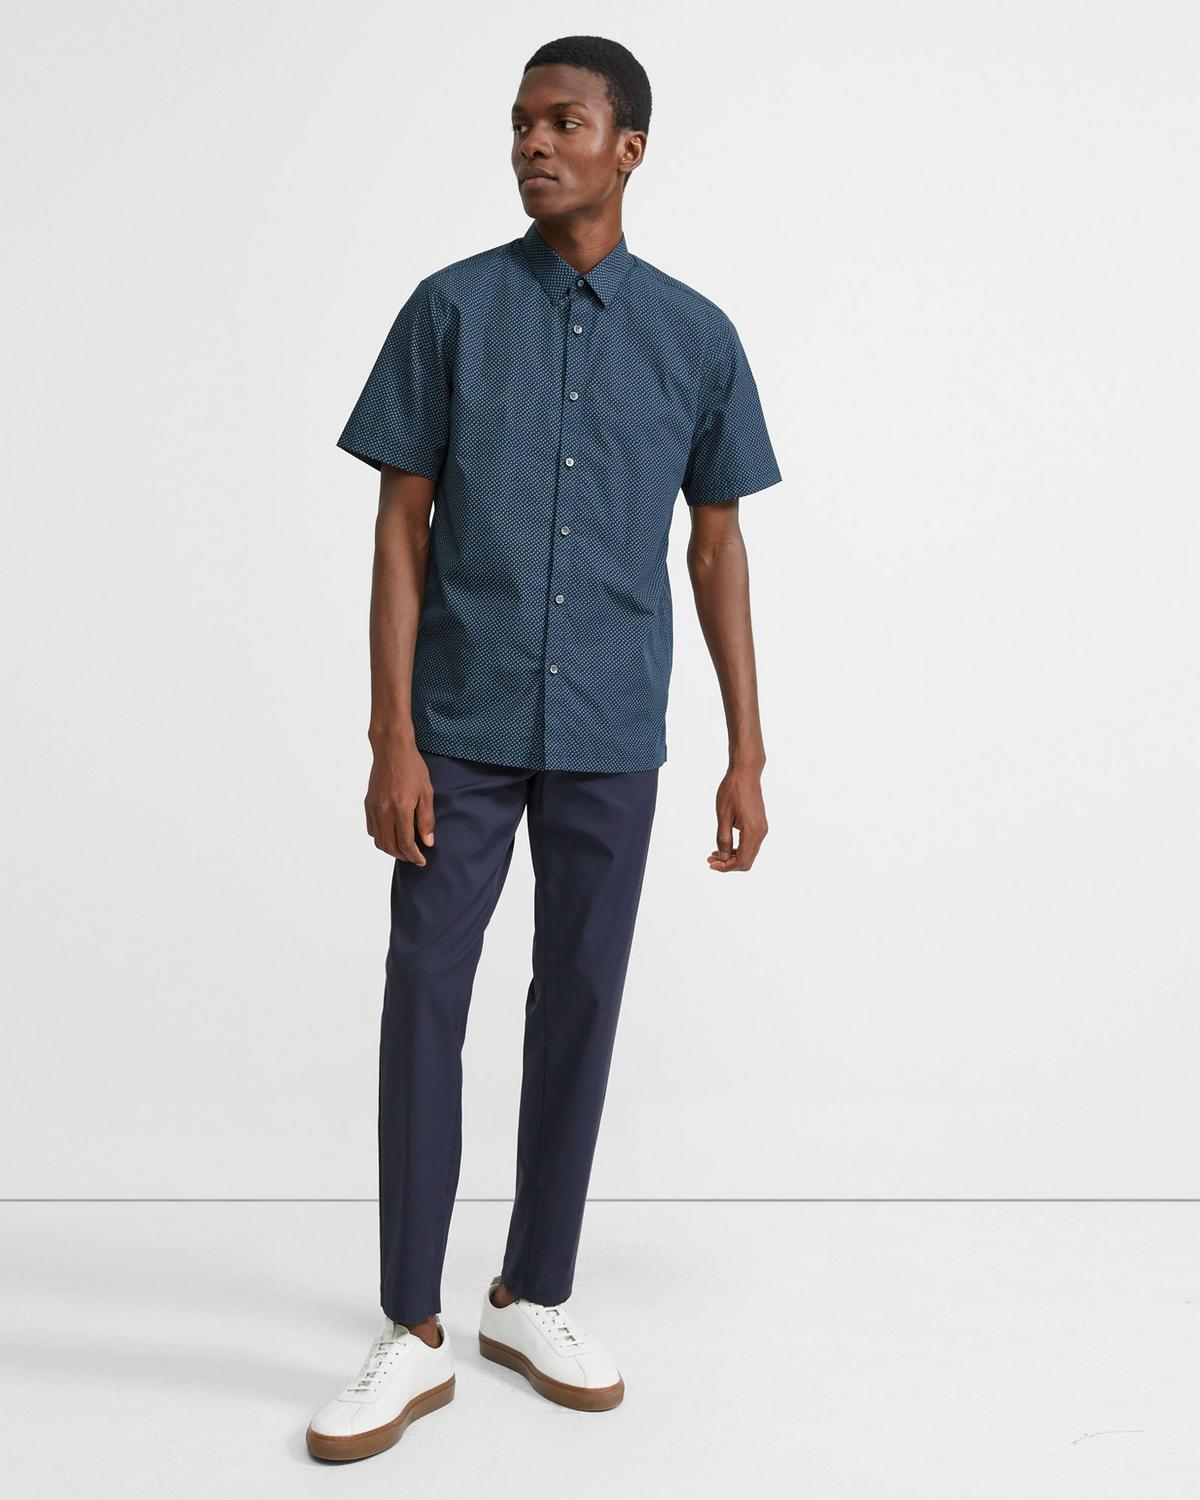 Cotton Square Print Short-Sleeve Irving Shirt